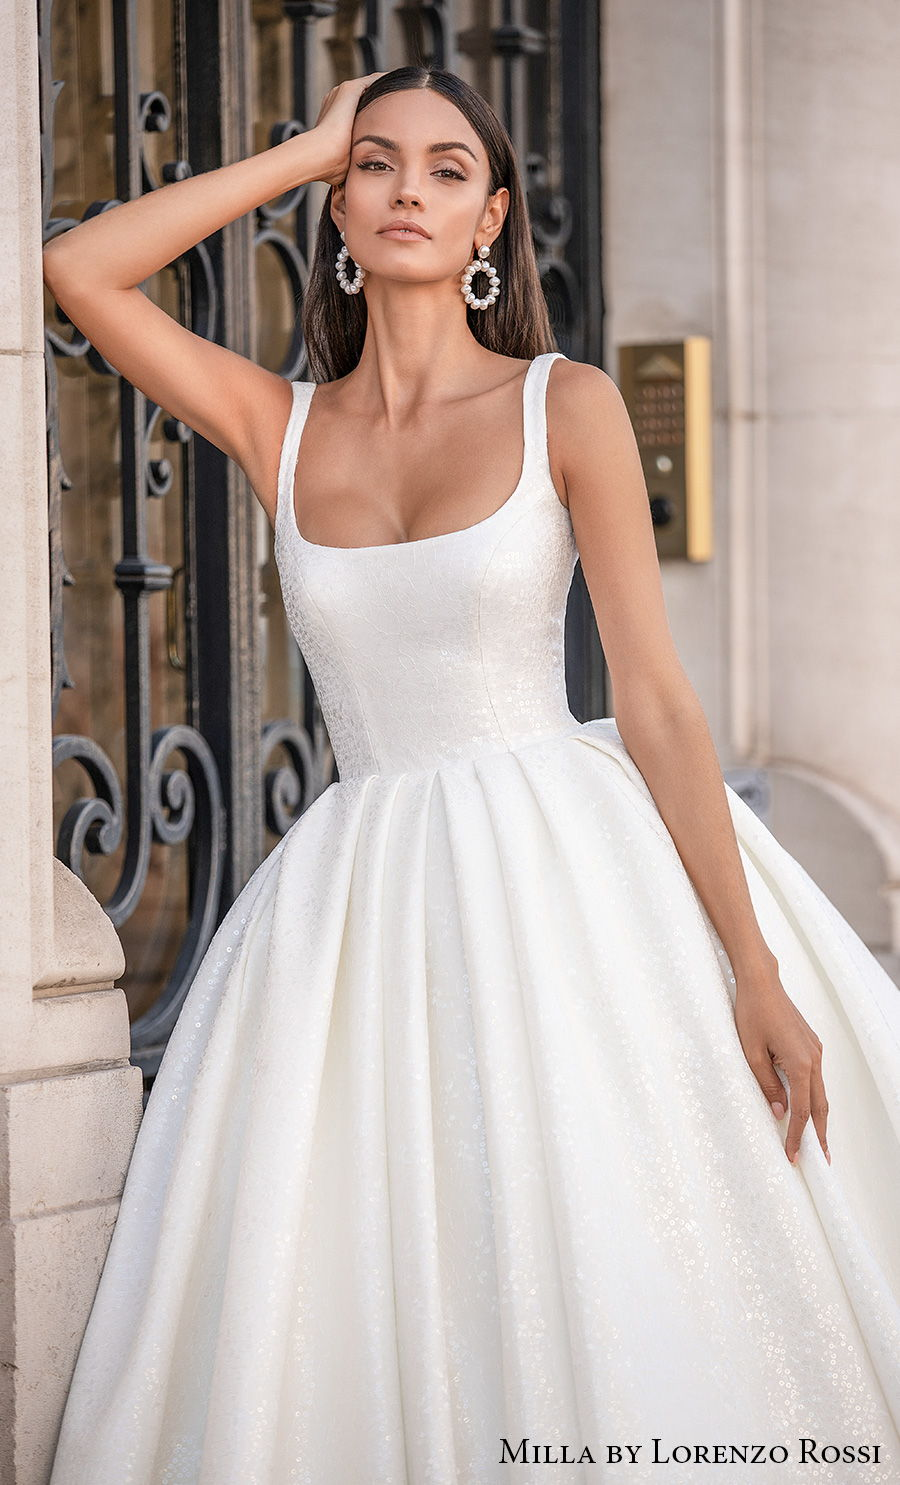 milla lorenzo rossi 2021 bridal sleeveless with strap square neckline simple minimalist elegant ball gown a line wedding dress mid back chapel train (gabrielle) zv